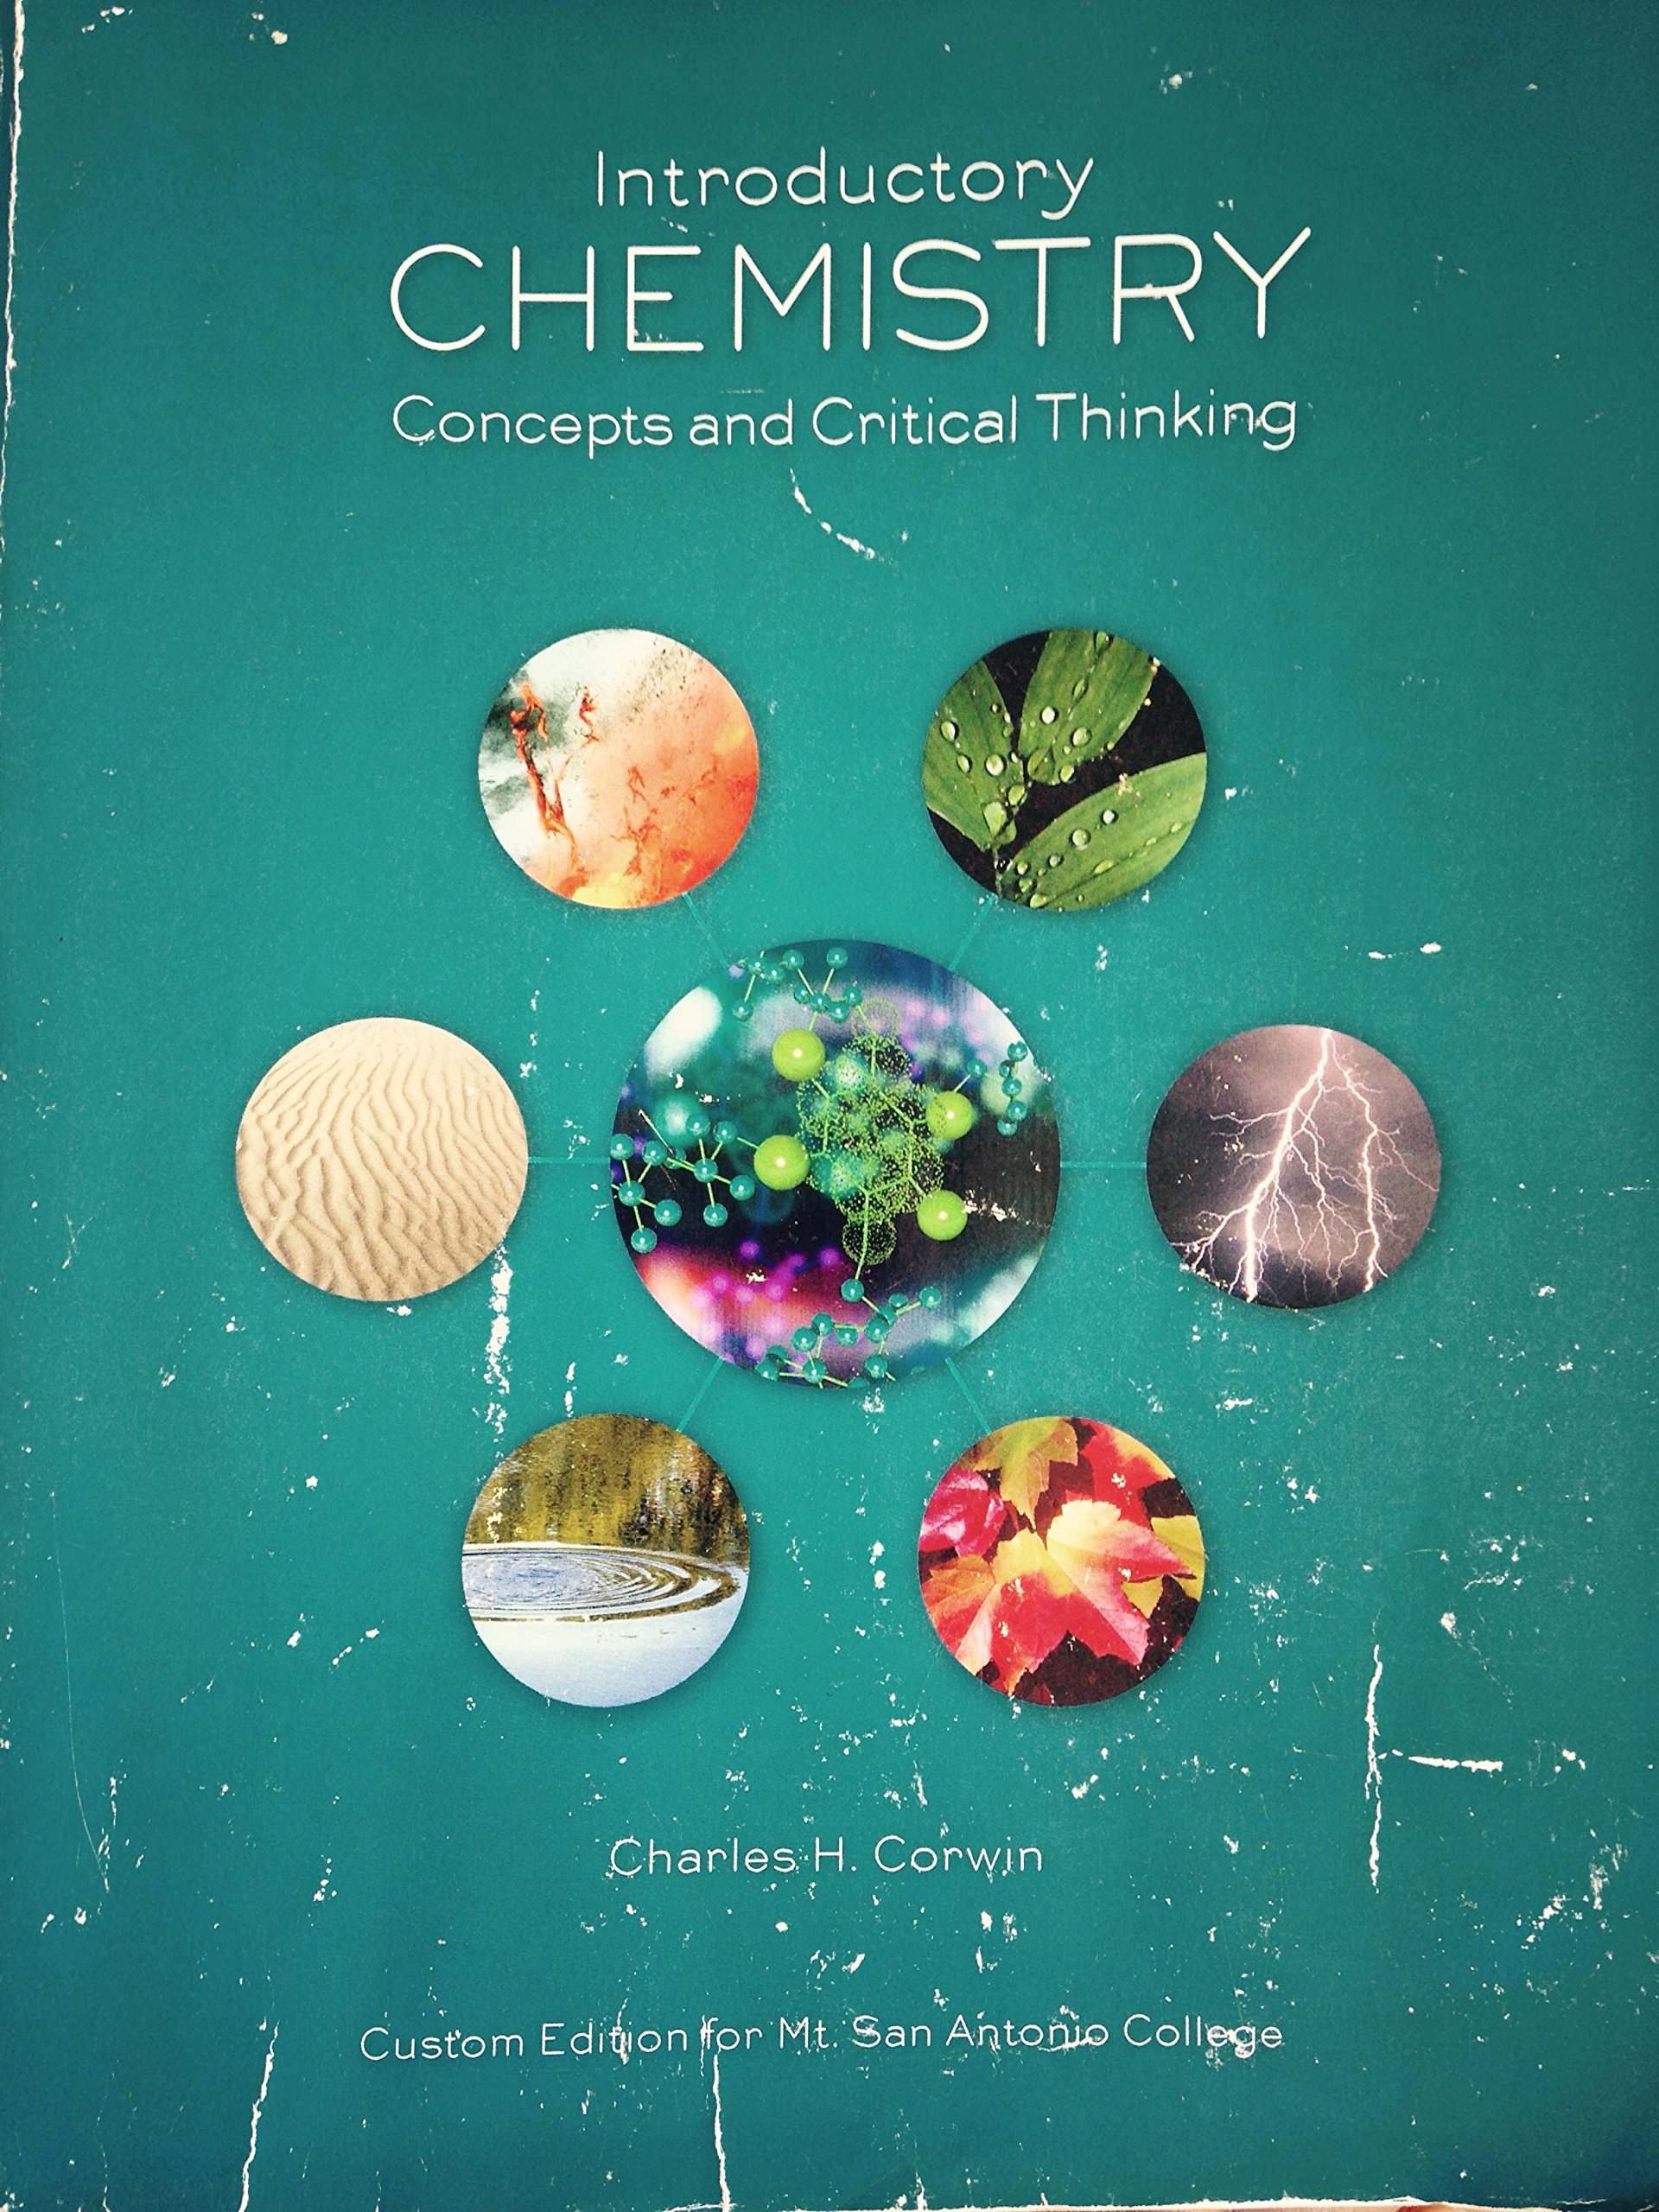 Introductory Chemistry: Concepts and Critical Thinking (Custom Editon for  Mt. San Antonio College): Charles H. Corwin: 9781269920018: Amazon.com:  Books